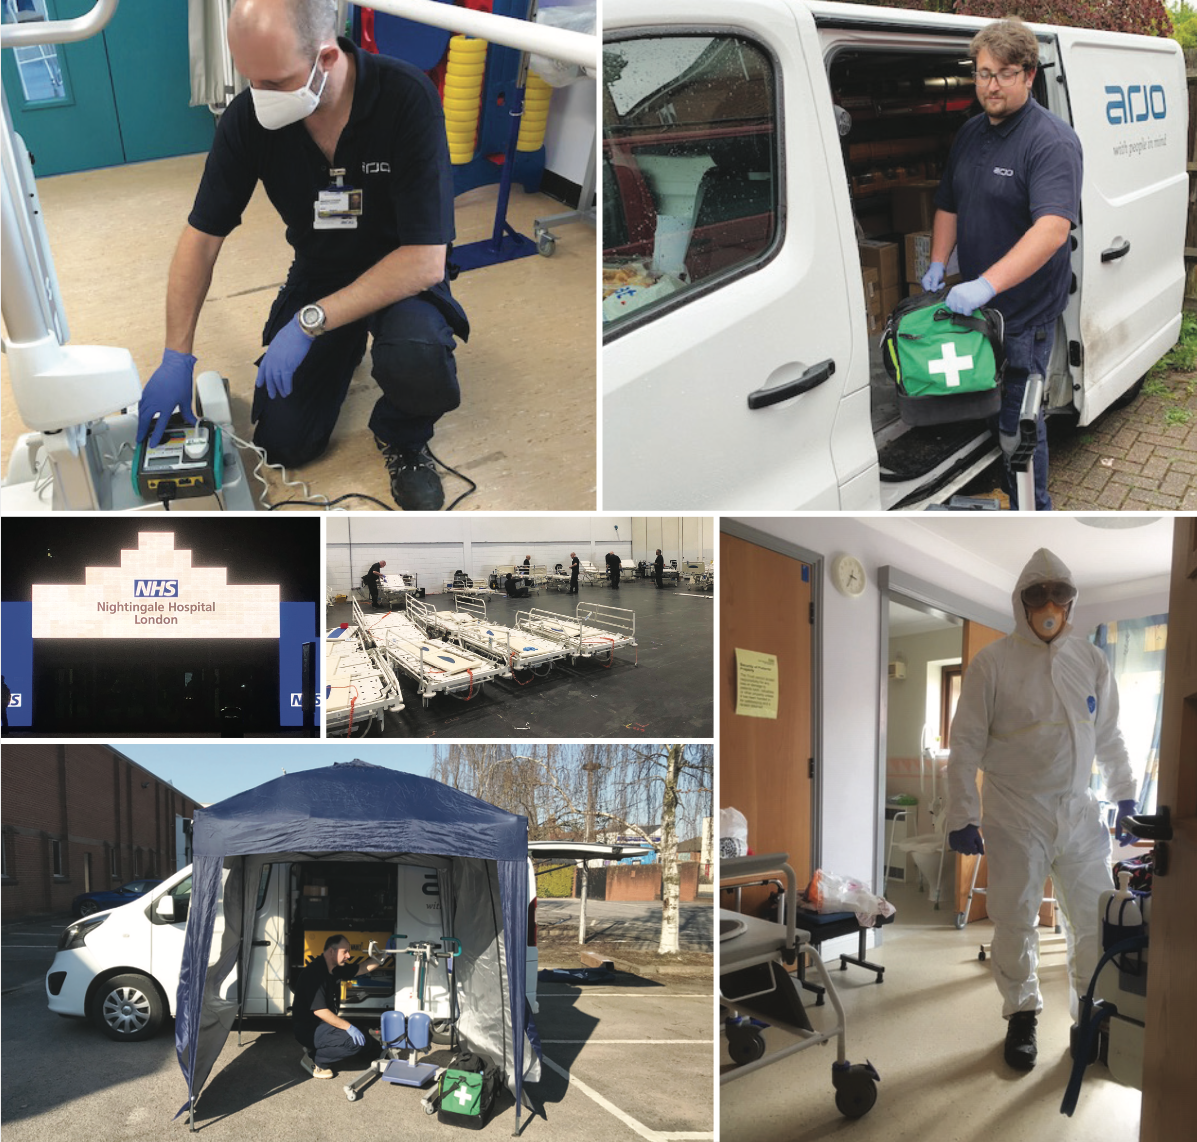 Arjo Care - Supporting our customers during the COVID-19 crisis